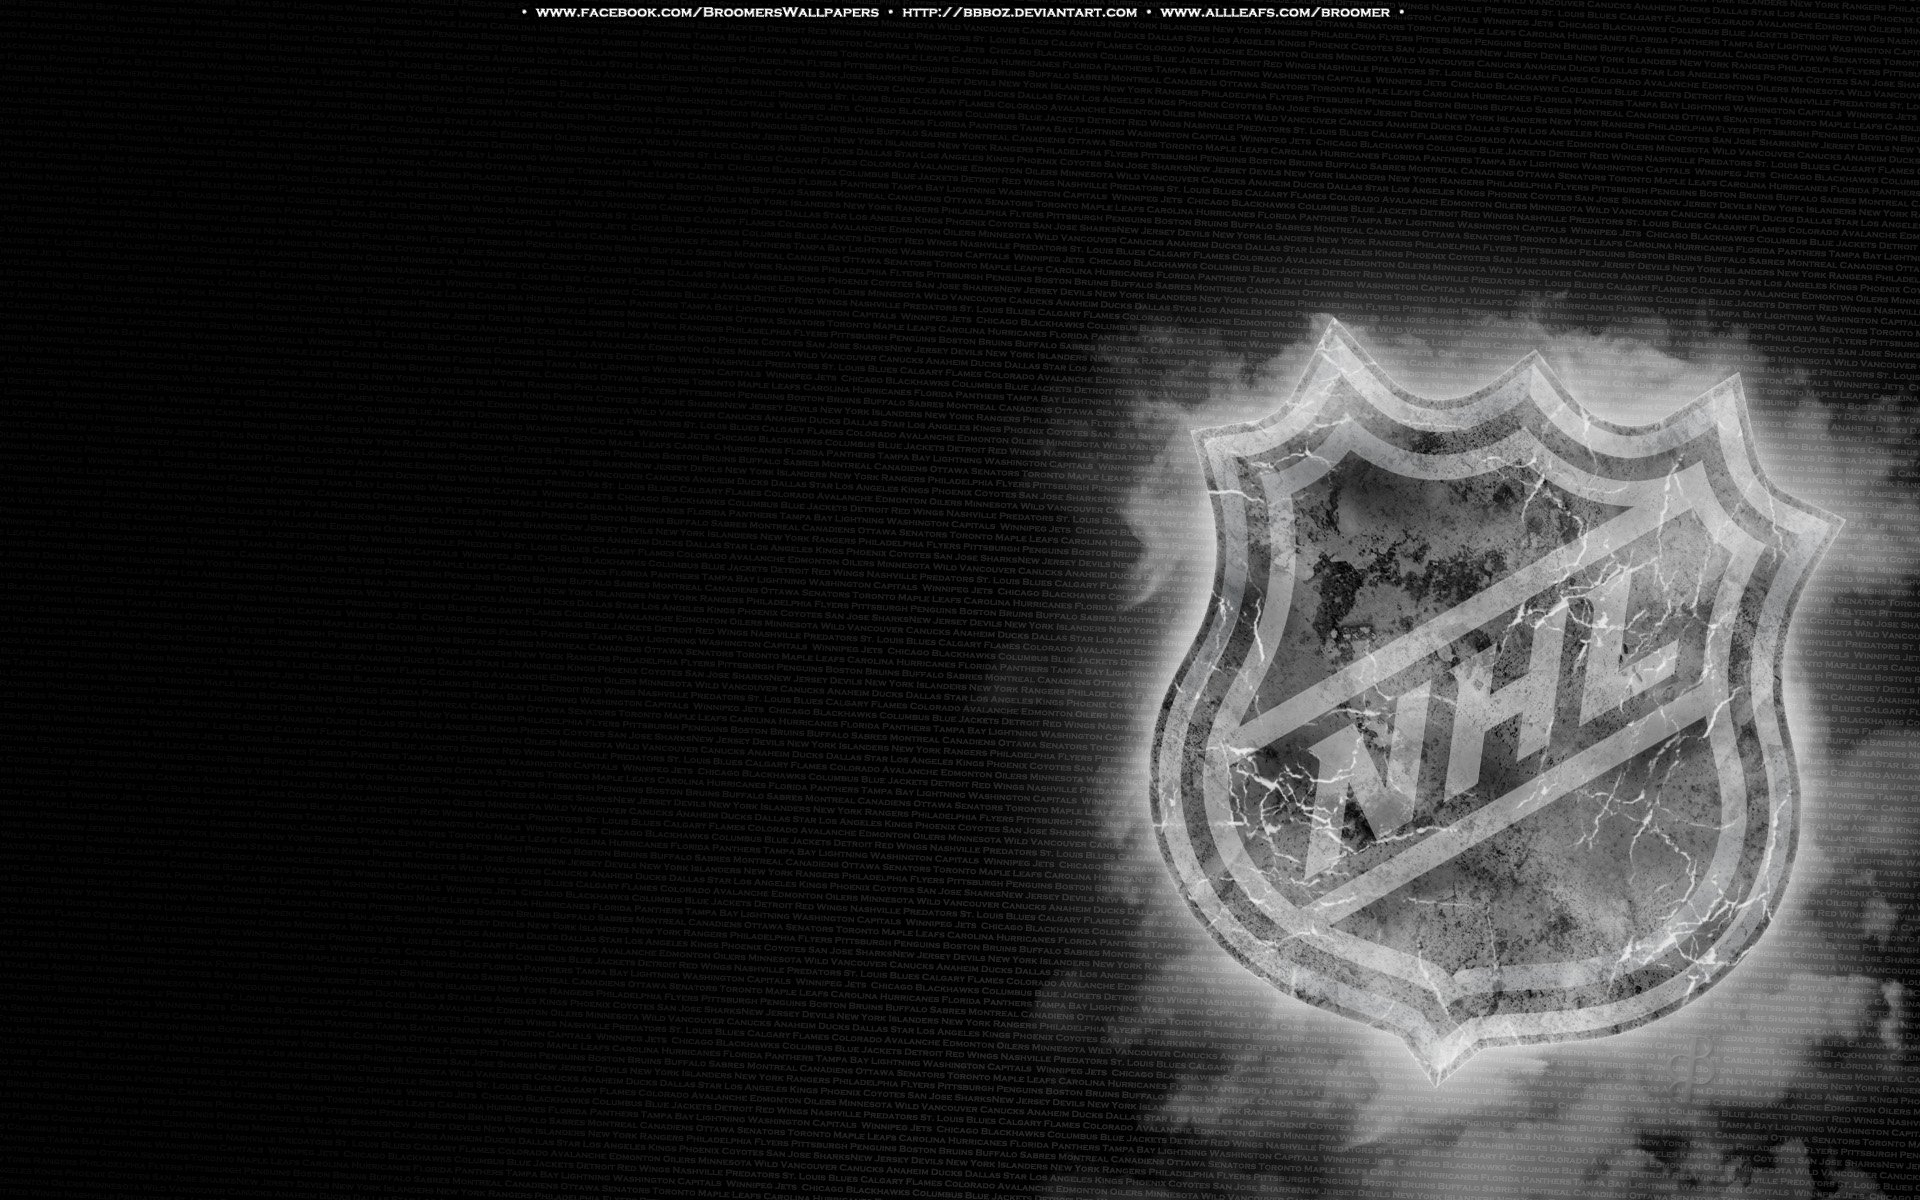 NHL Ice by bbboz 1920x1200